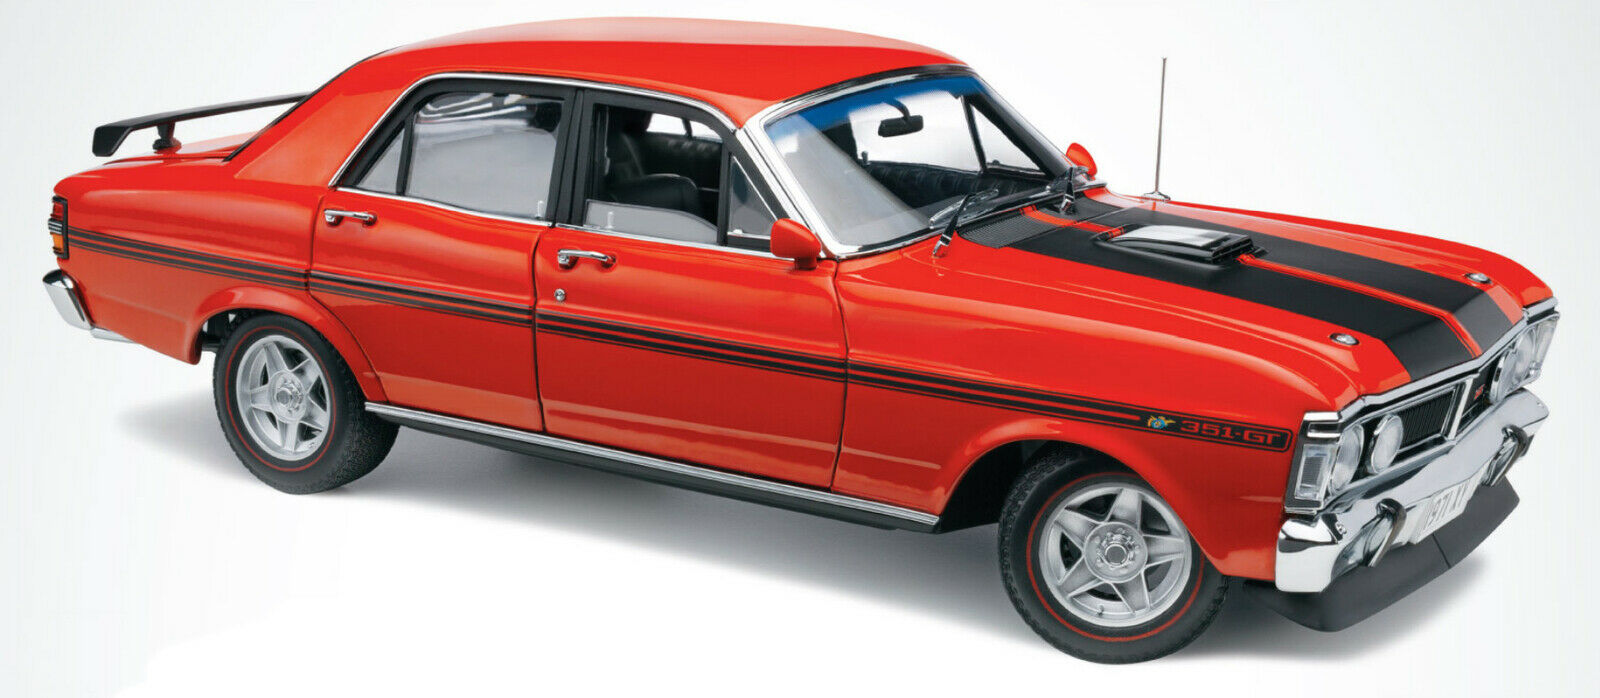 Classic Carlectables 18676 1 18 Scale Ford XY Falcon Phase III GT-HO